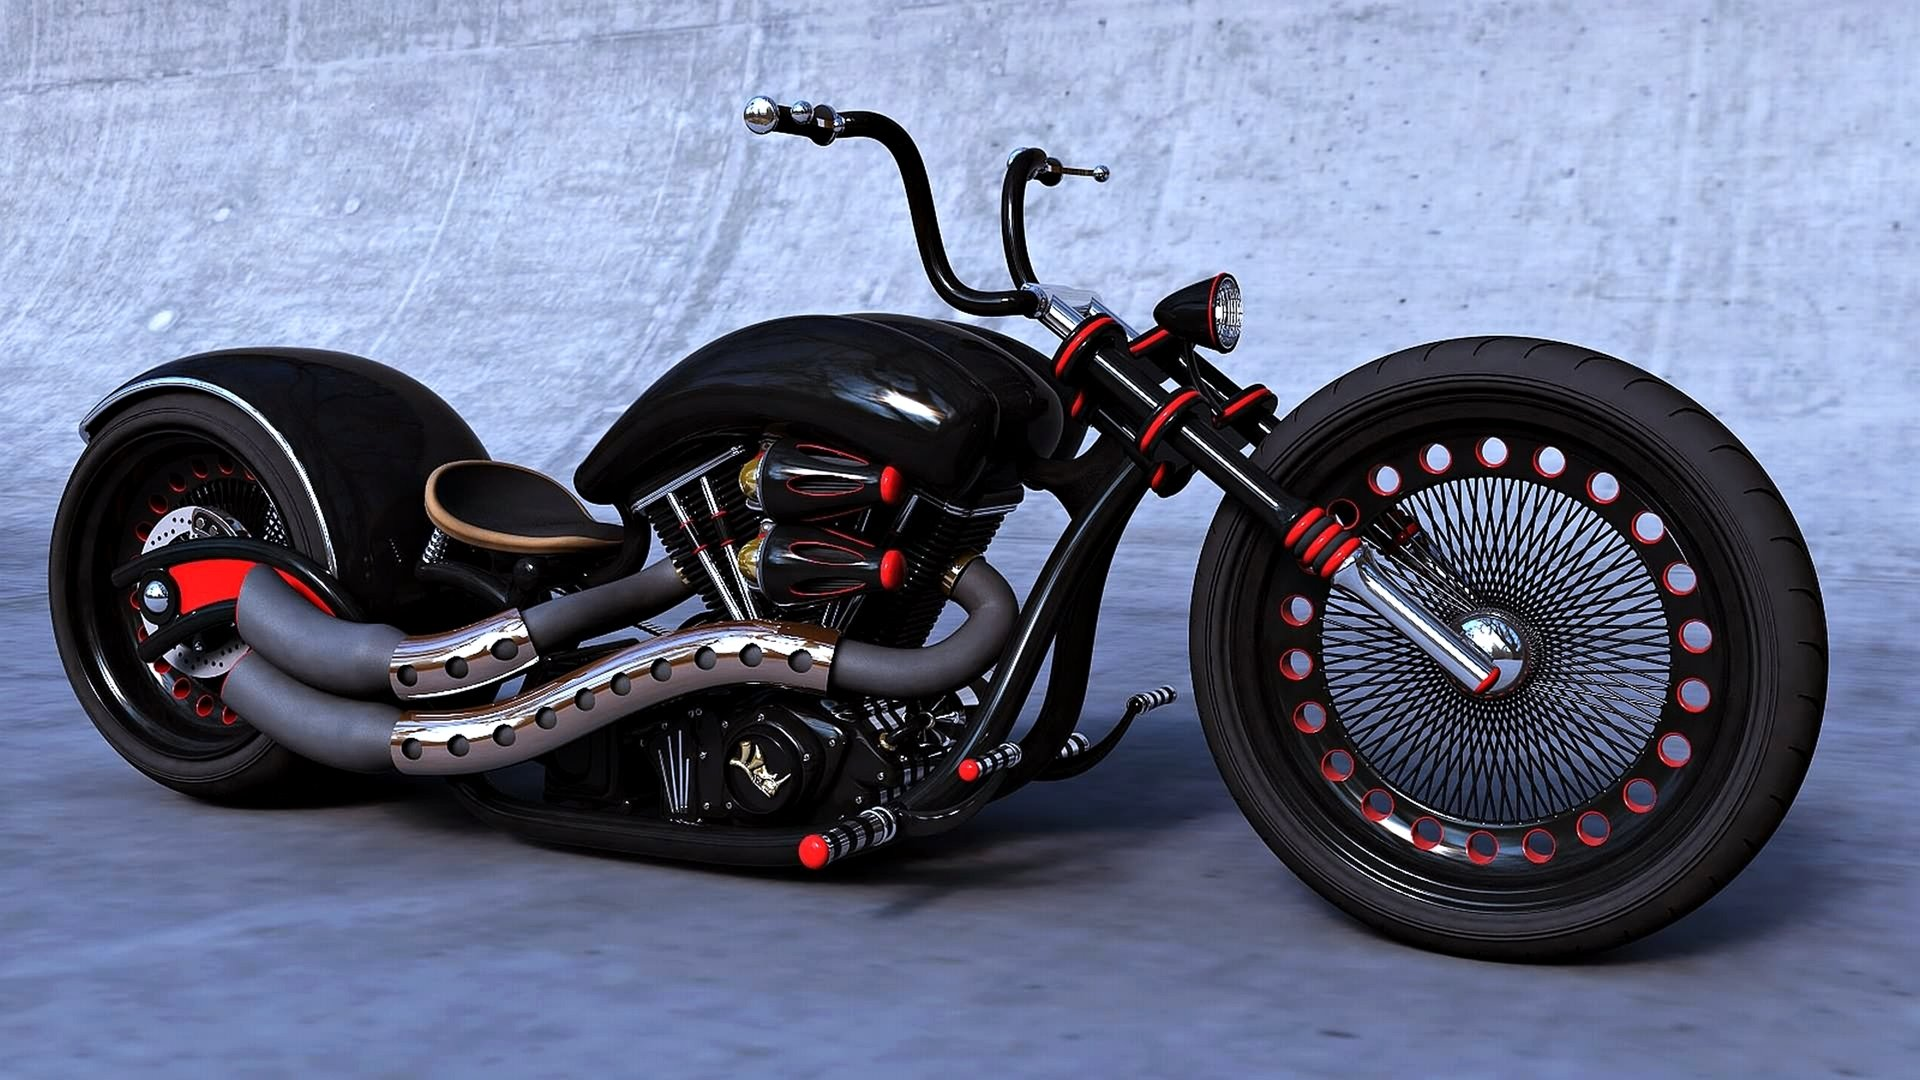 Vehicles - Harley-Davidson  Motorcycle Bike Wallpaper